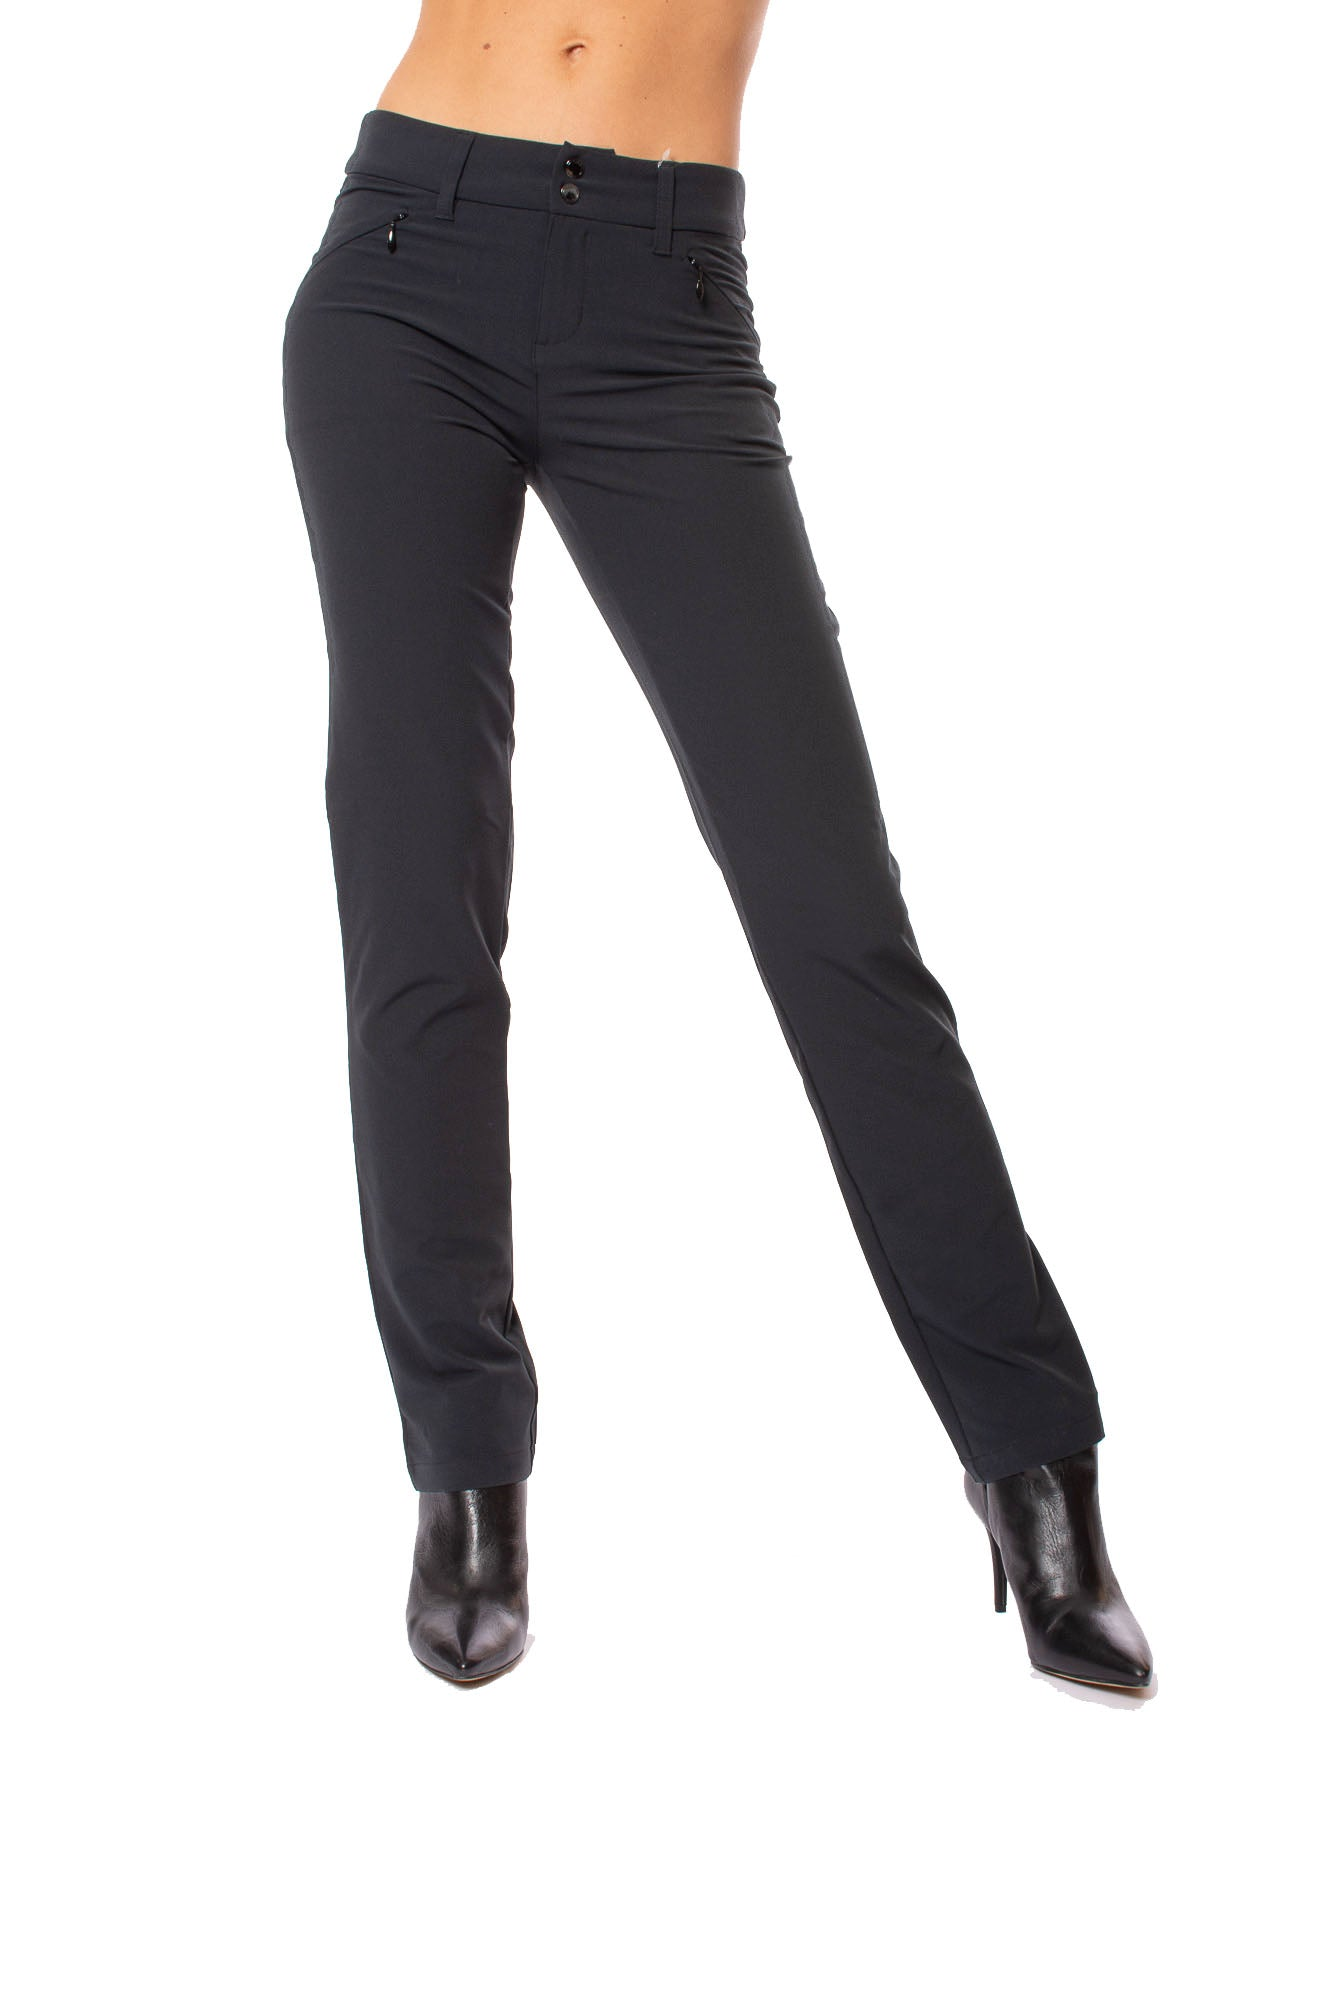 Live Out Loud Every Day - Travel Pant (SSL0073, Black)